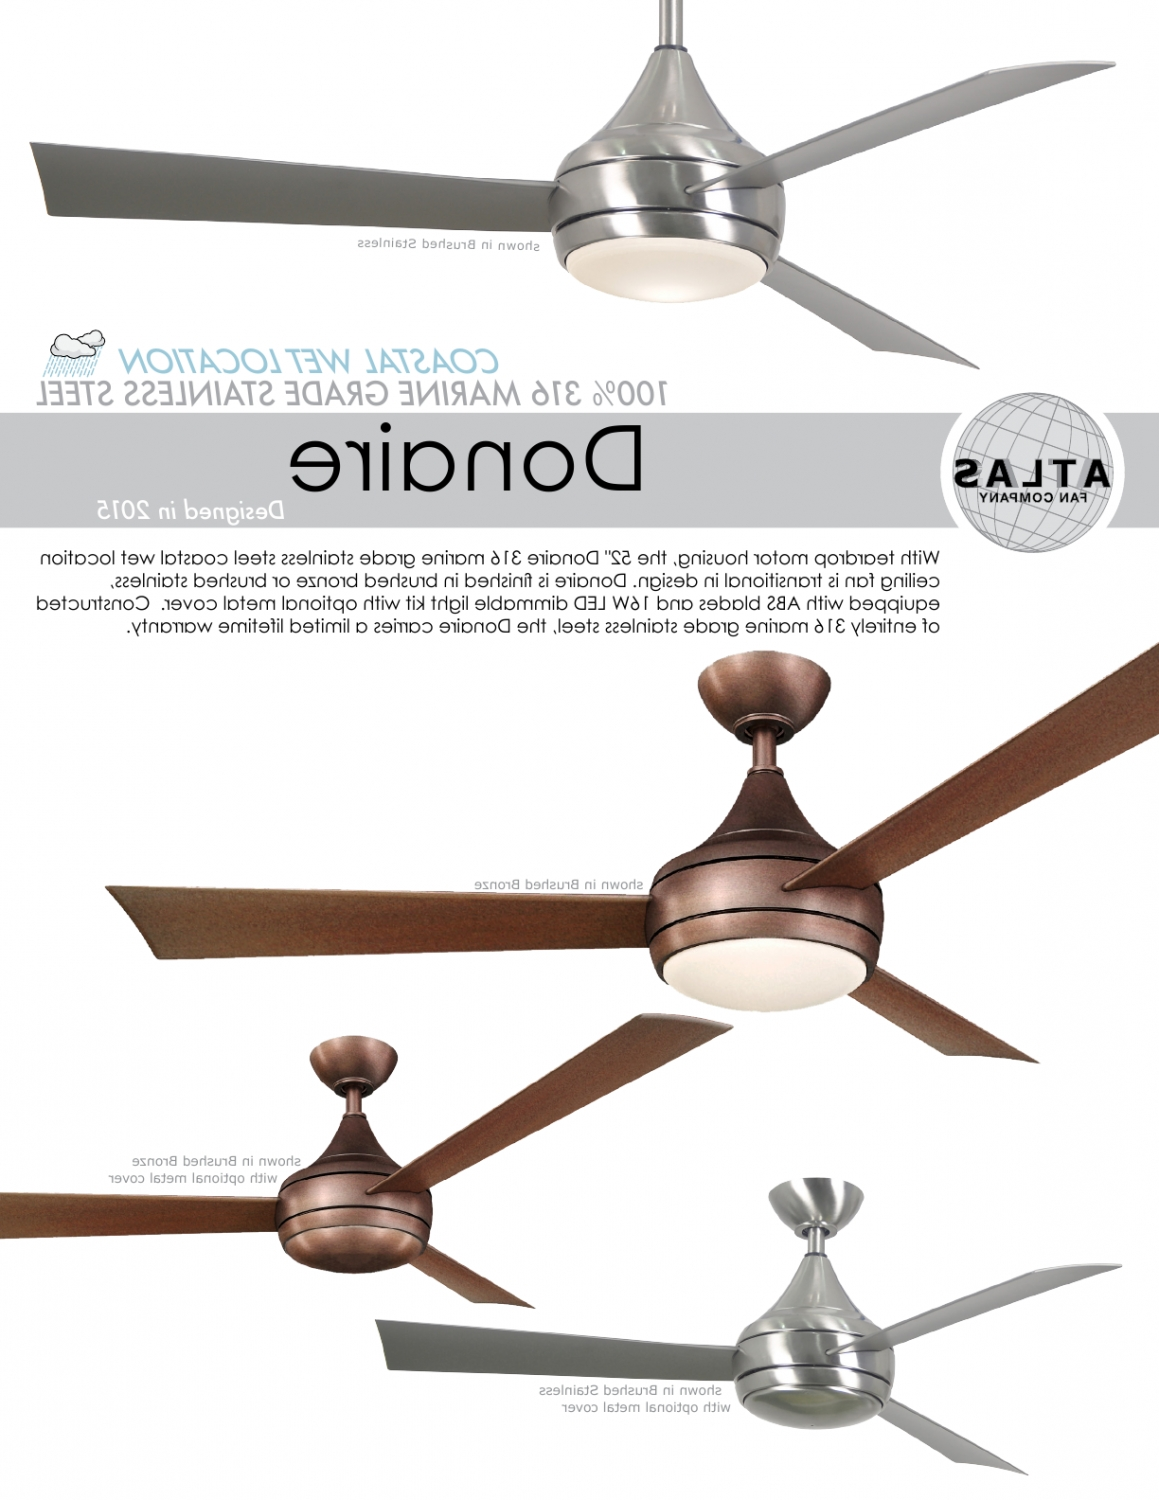 Most Recent Donaire Ceiling Fan For Balcony Terrace Verandah Outdoor Spaces With Regard To Stainless Steel Outdoor Ceiling Fans With Light (View 8 of 20)